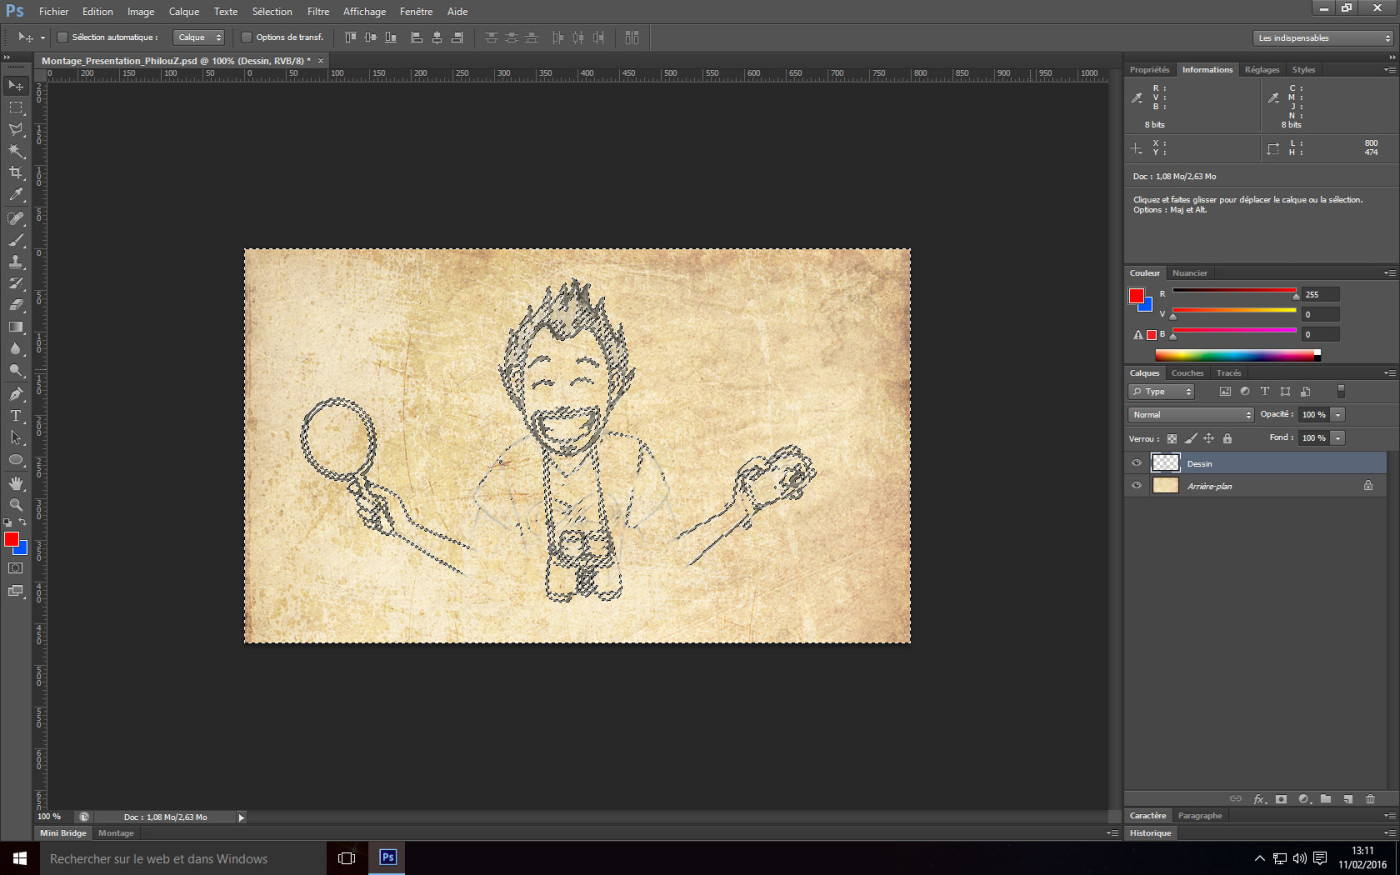 Tutoriel Photoshop - Suppression du blanc dans le calque